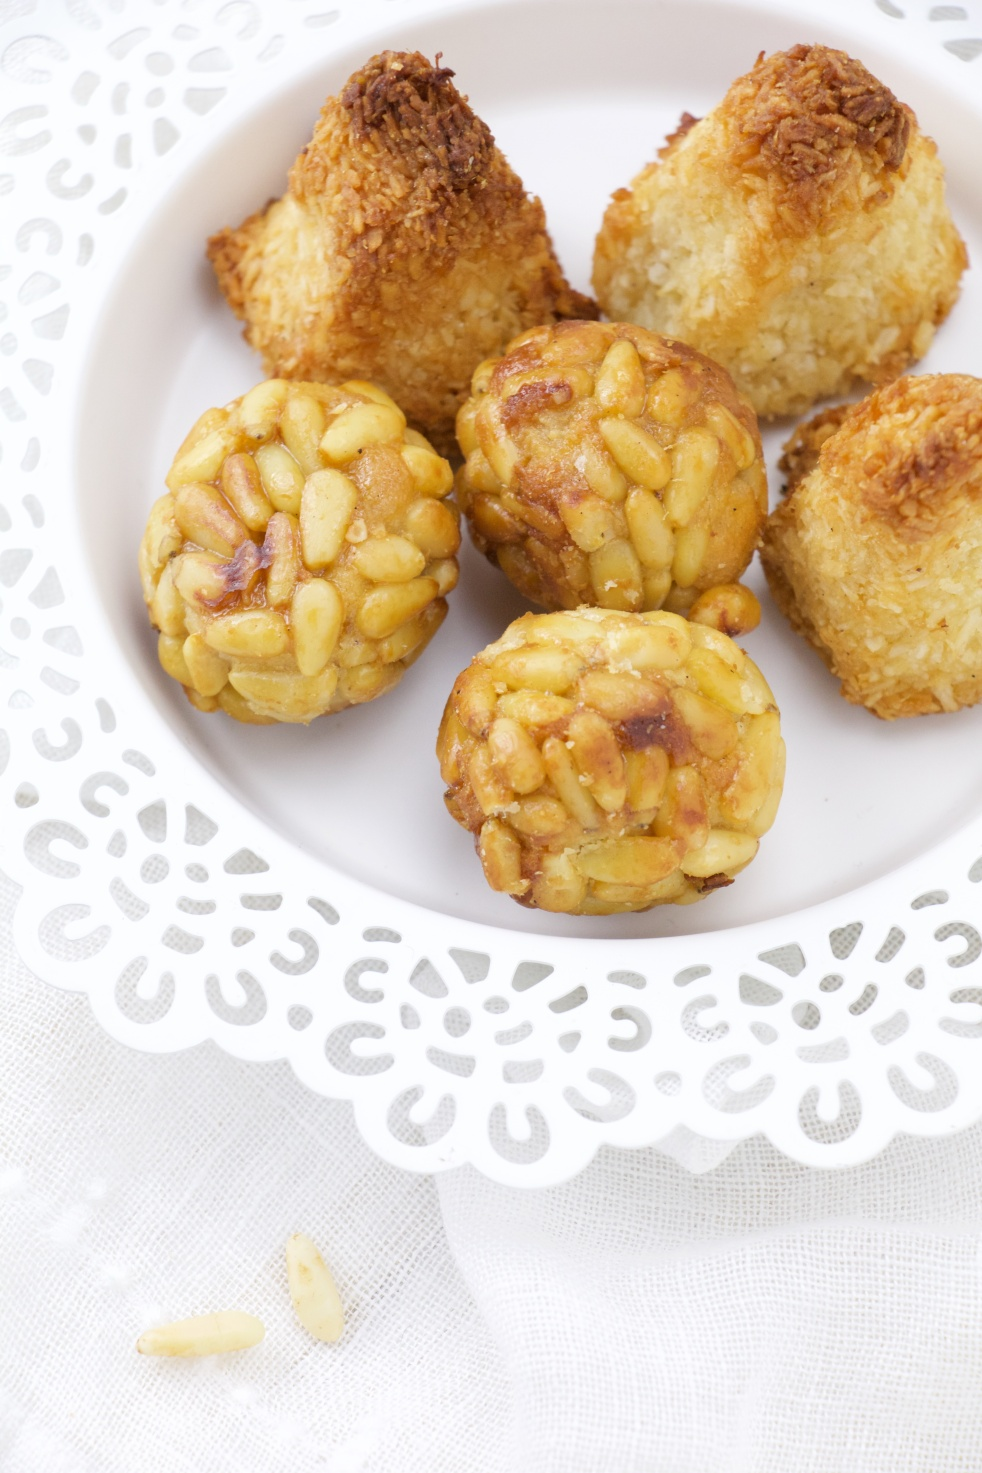 panellets pine nuts marzipan almond catalan